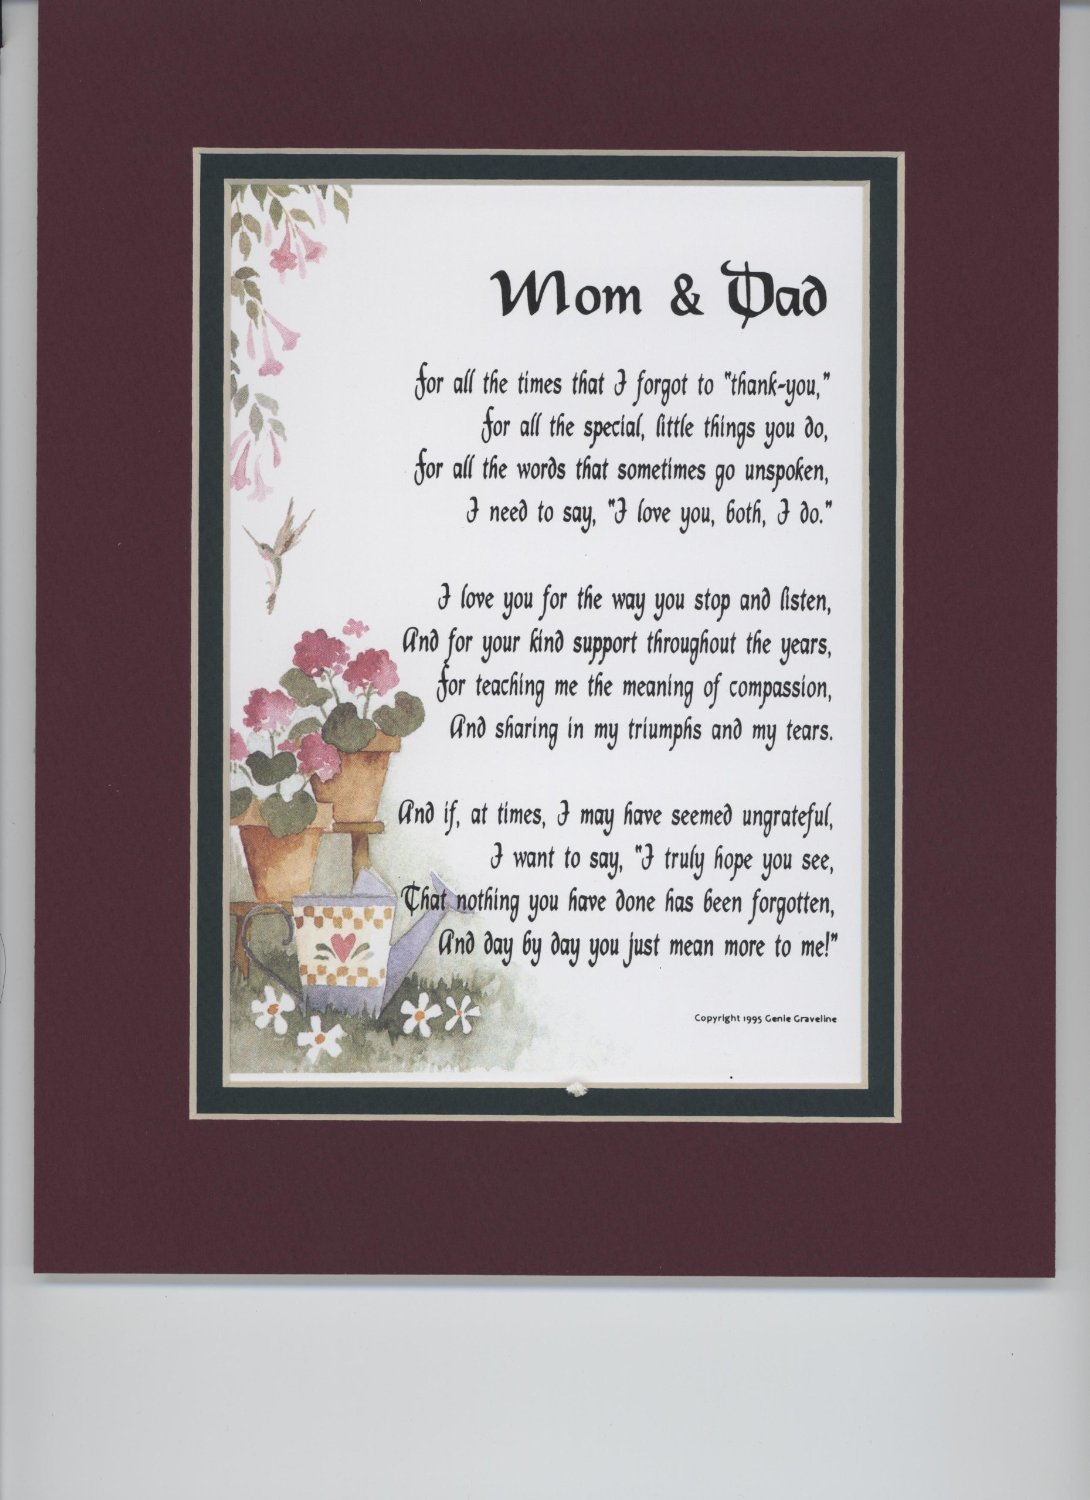 25th anniversary gifts for pas handmade gift ideas th wedding anniversary poems m4hsunfo